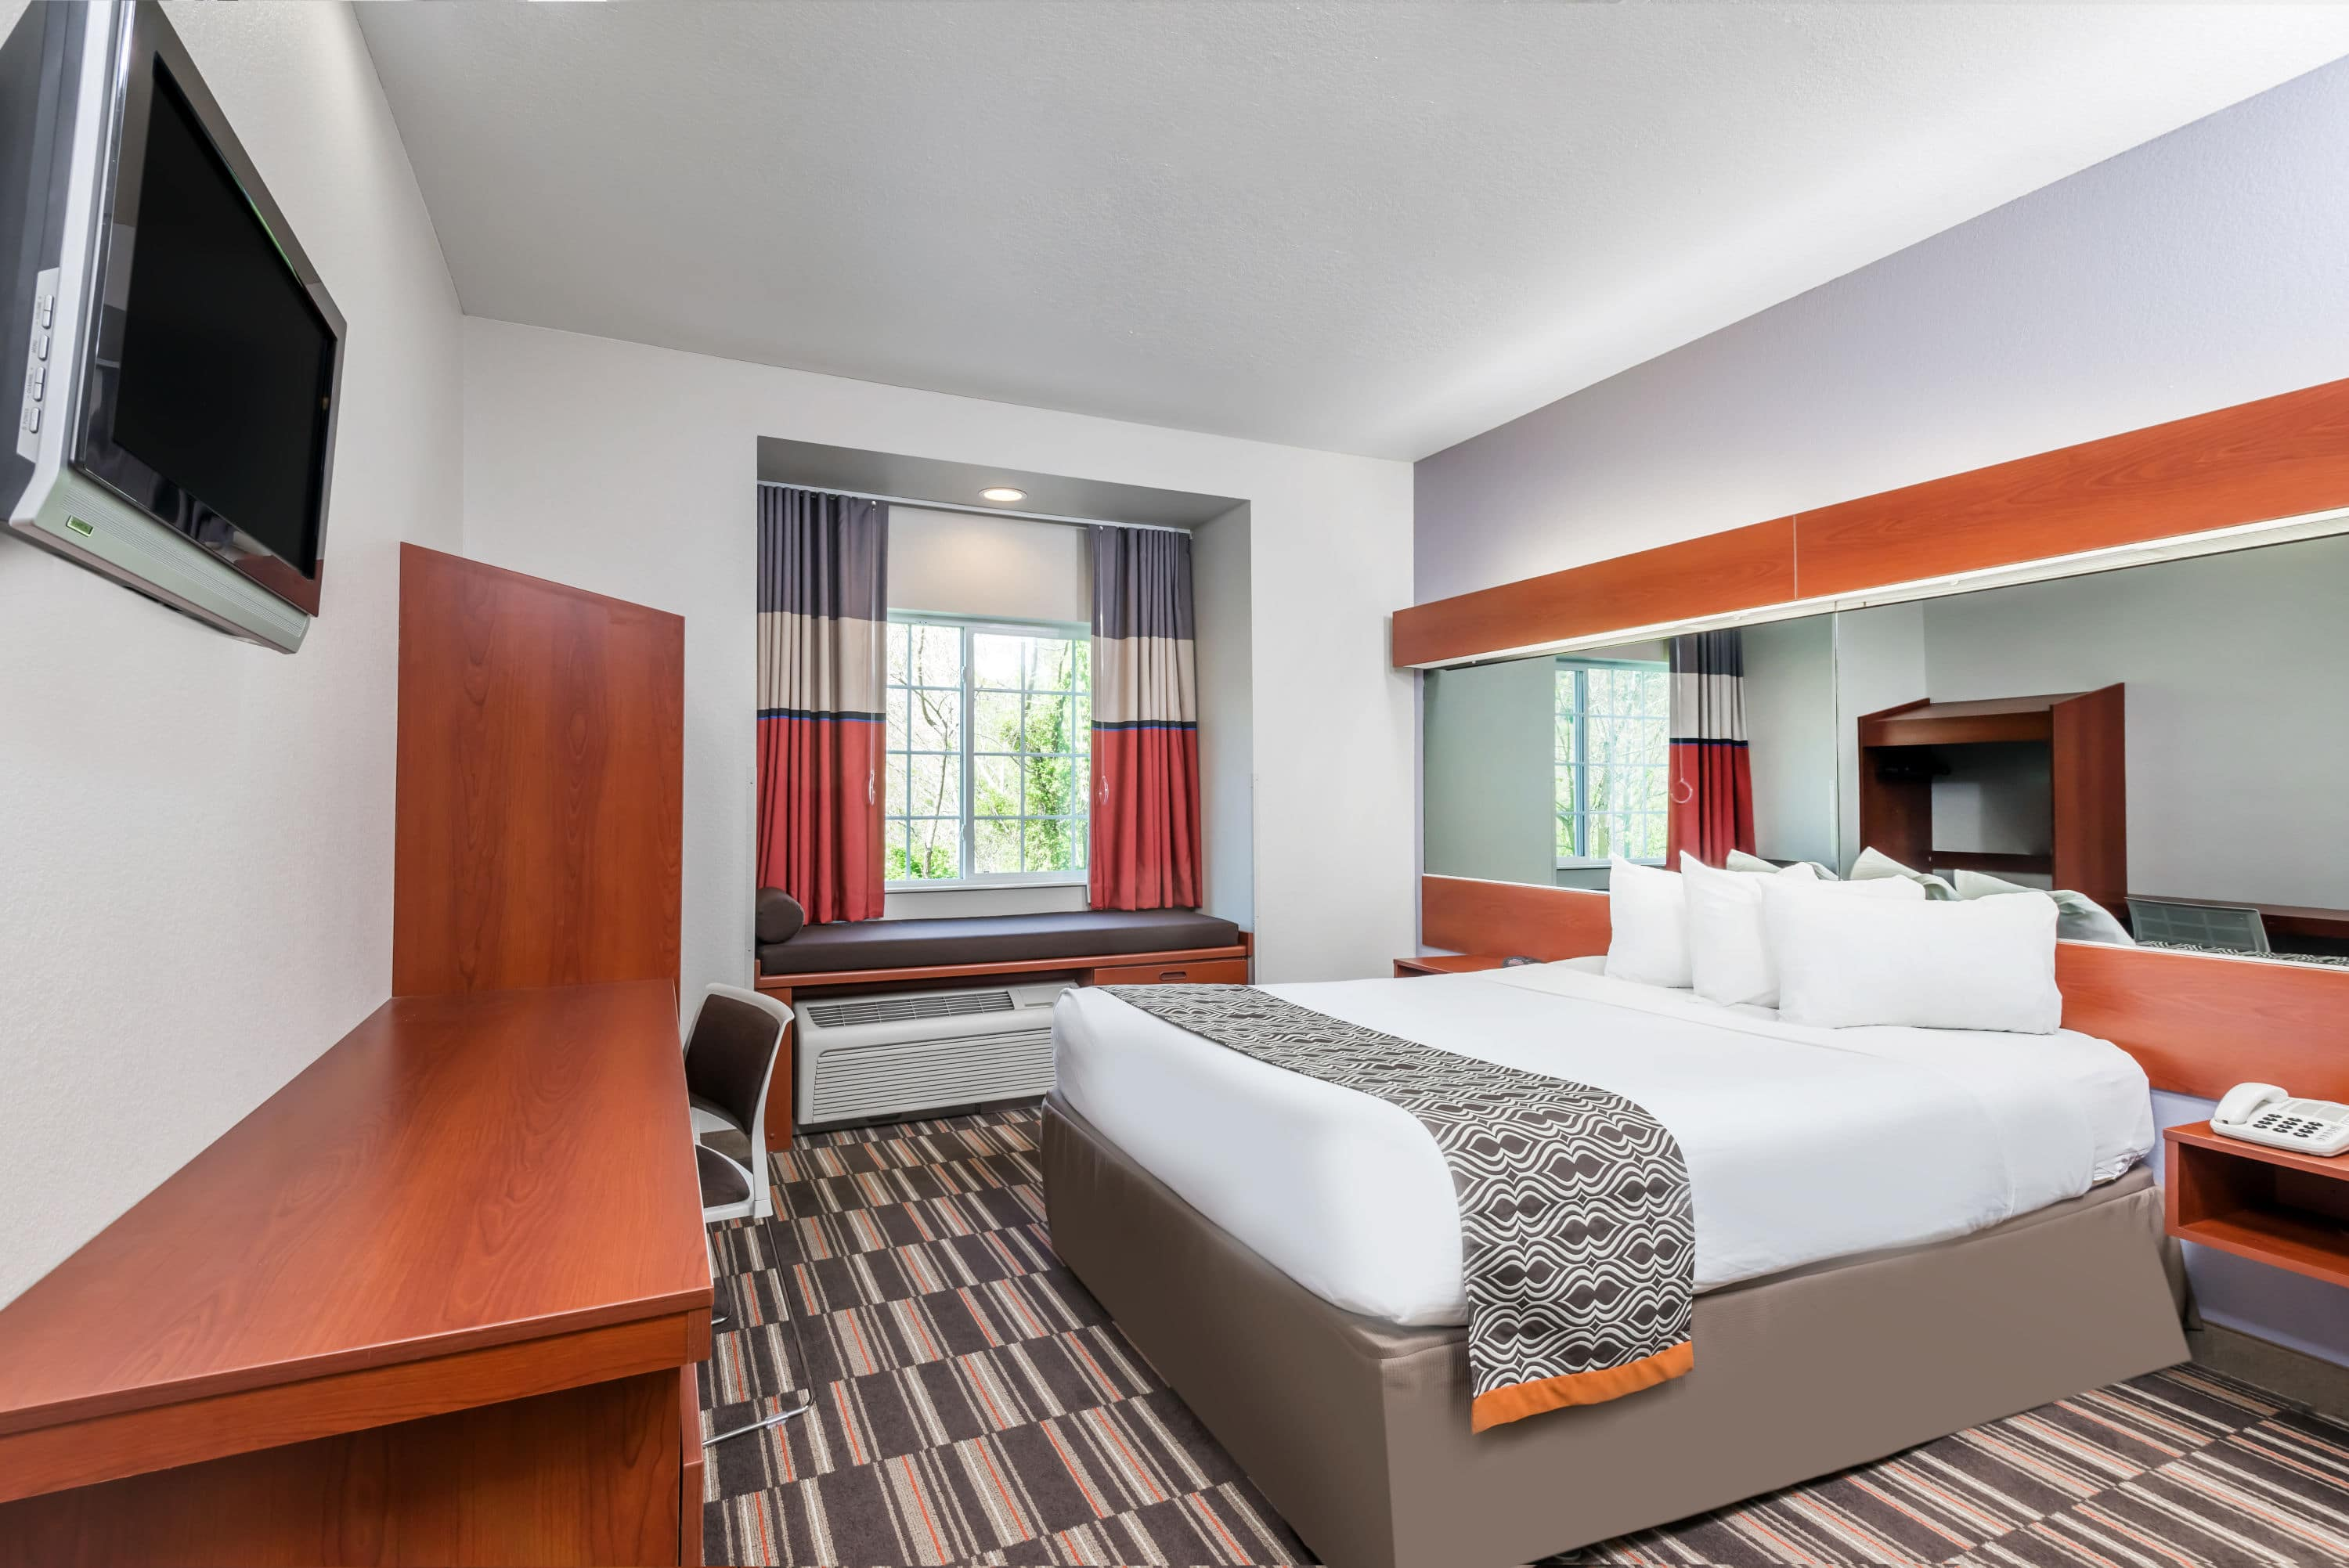 Guest Room At The Microtel Inn U Suites By Wyndham Morgantown In West Virginia With Hotels Near Ruby Memorial Hospital Wv